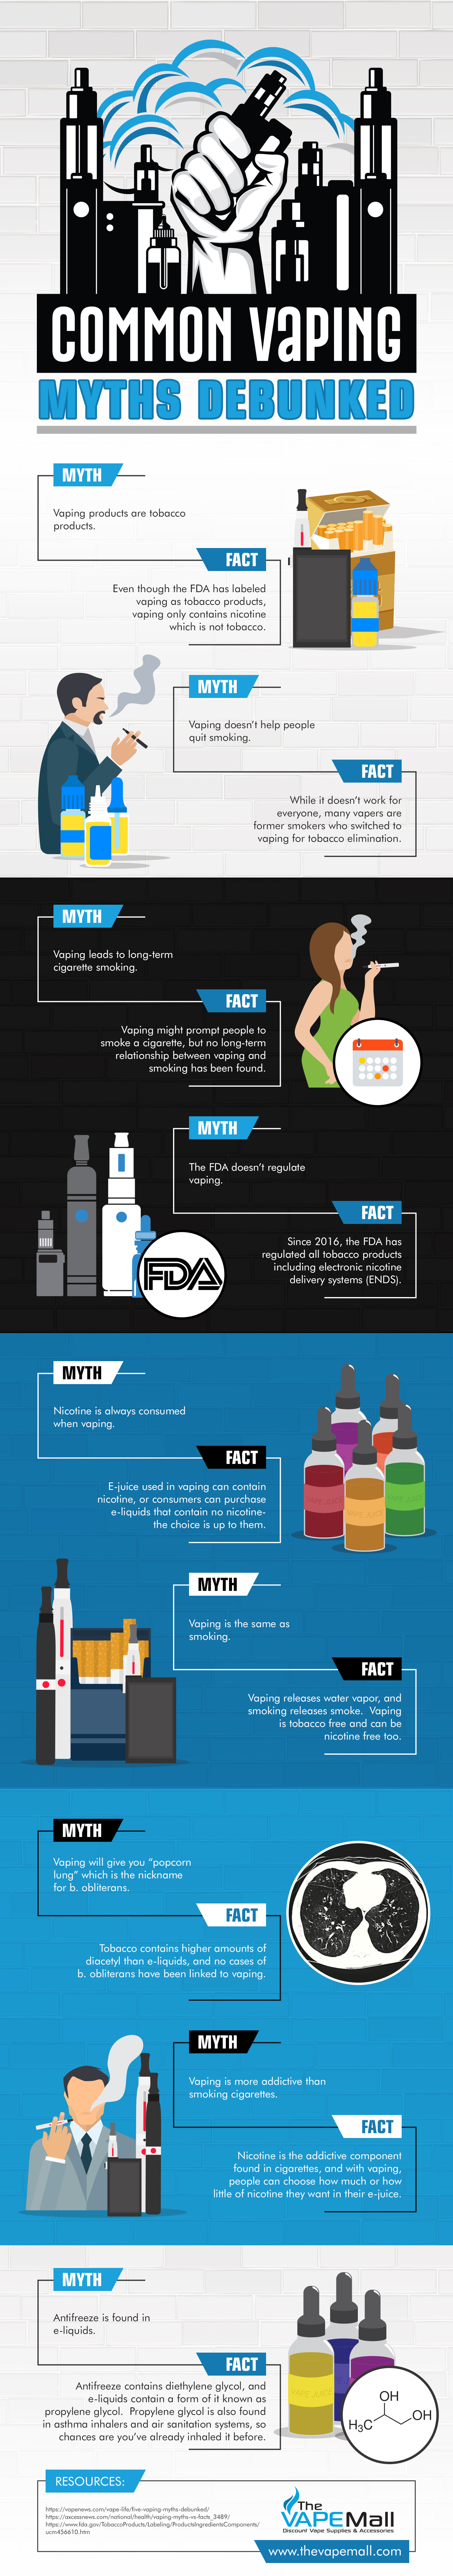 Debunking Vaping Myths: The Truth about 9 False Rumors about Vaping - Infographic